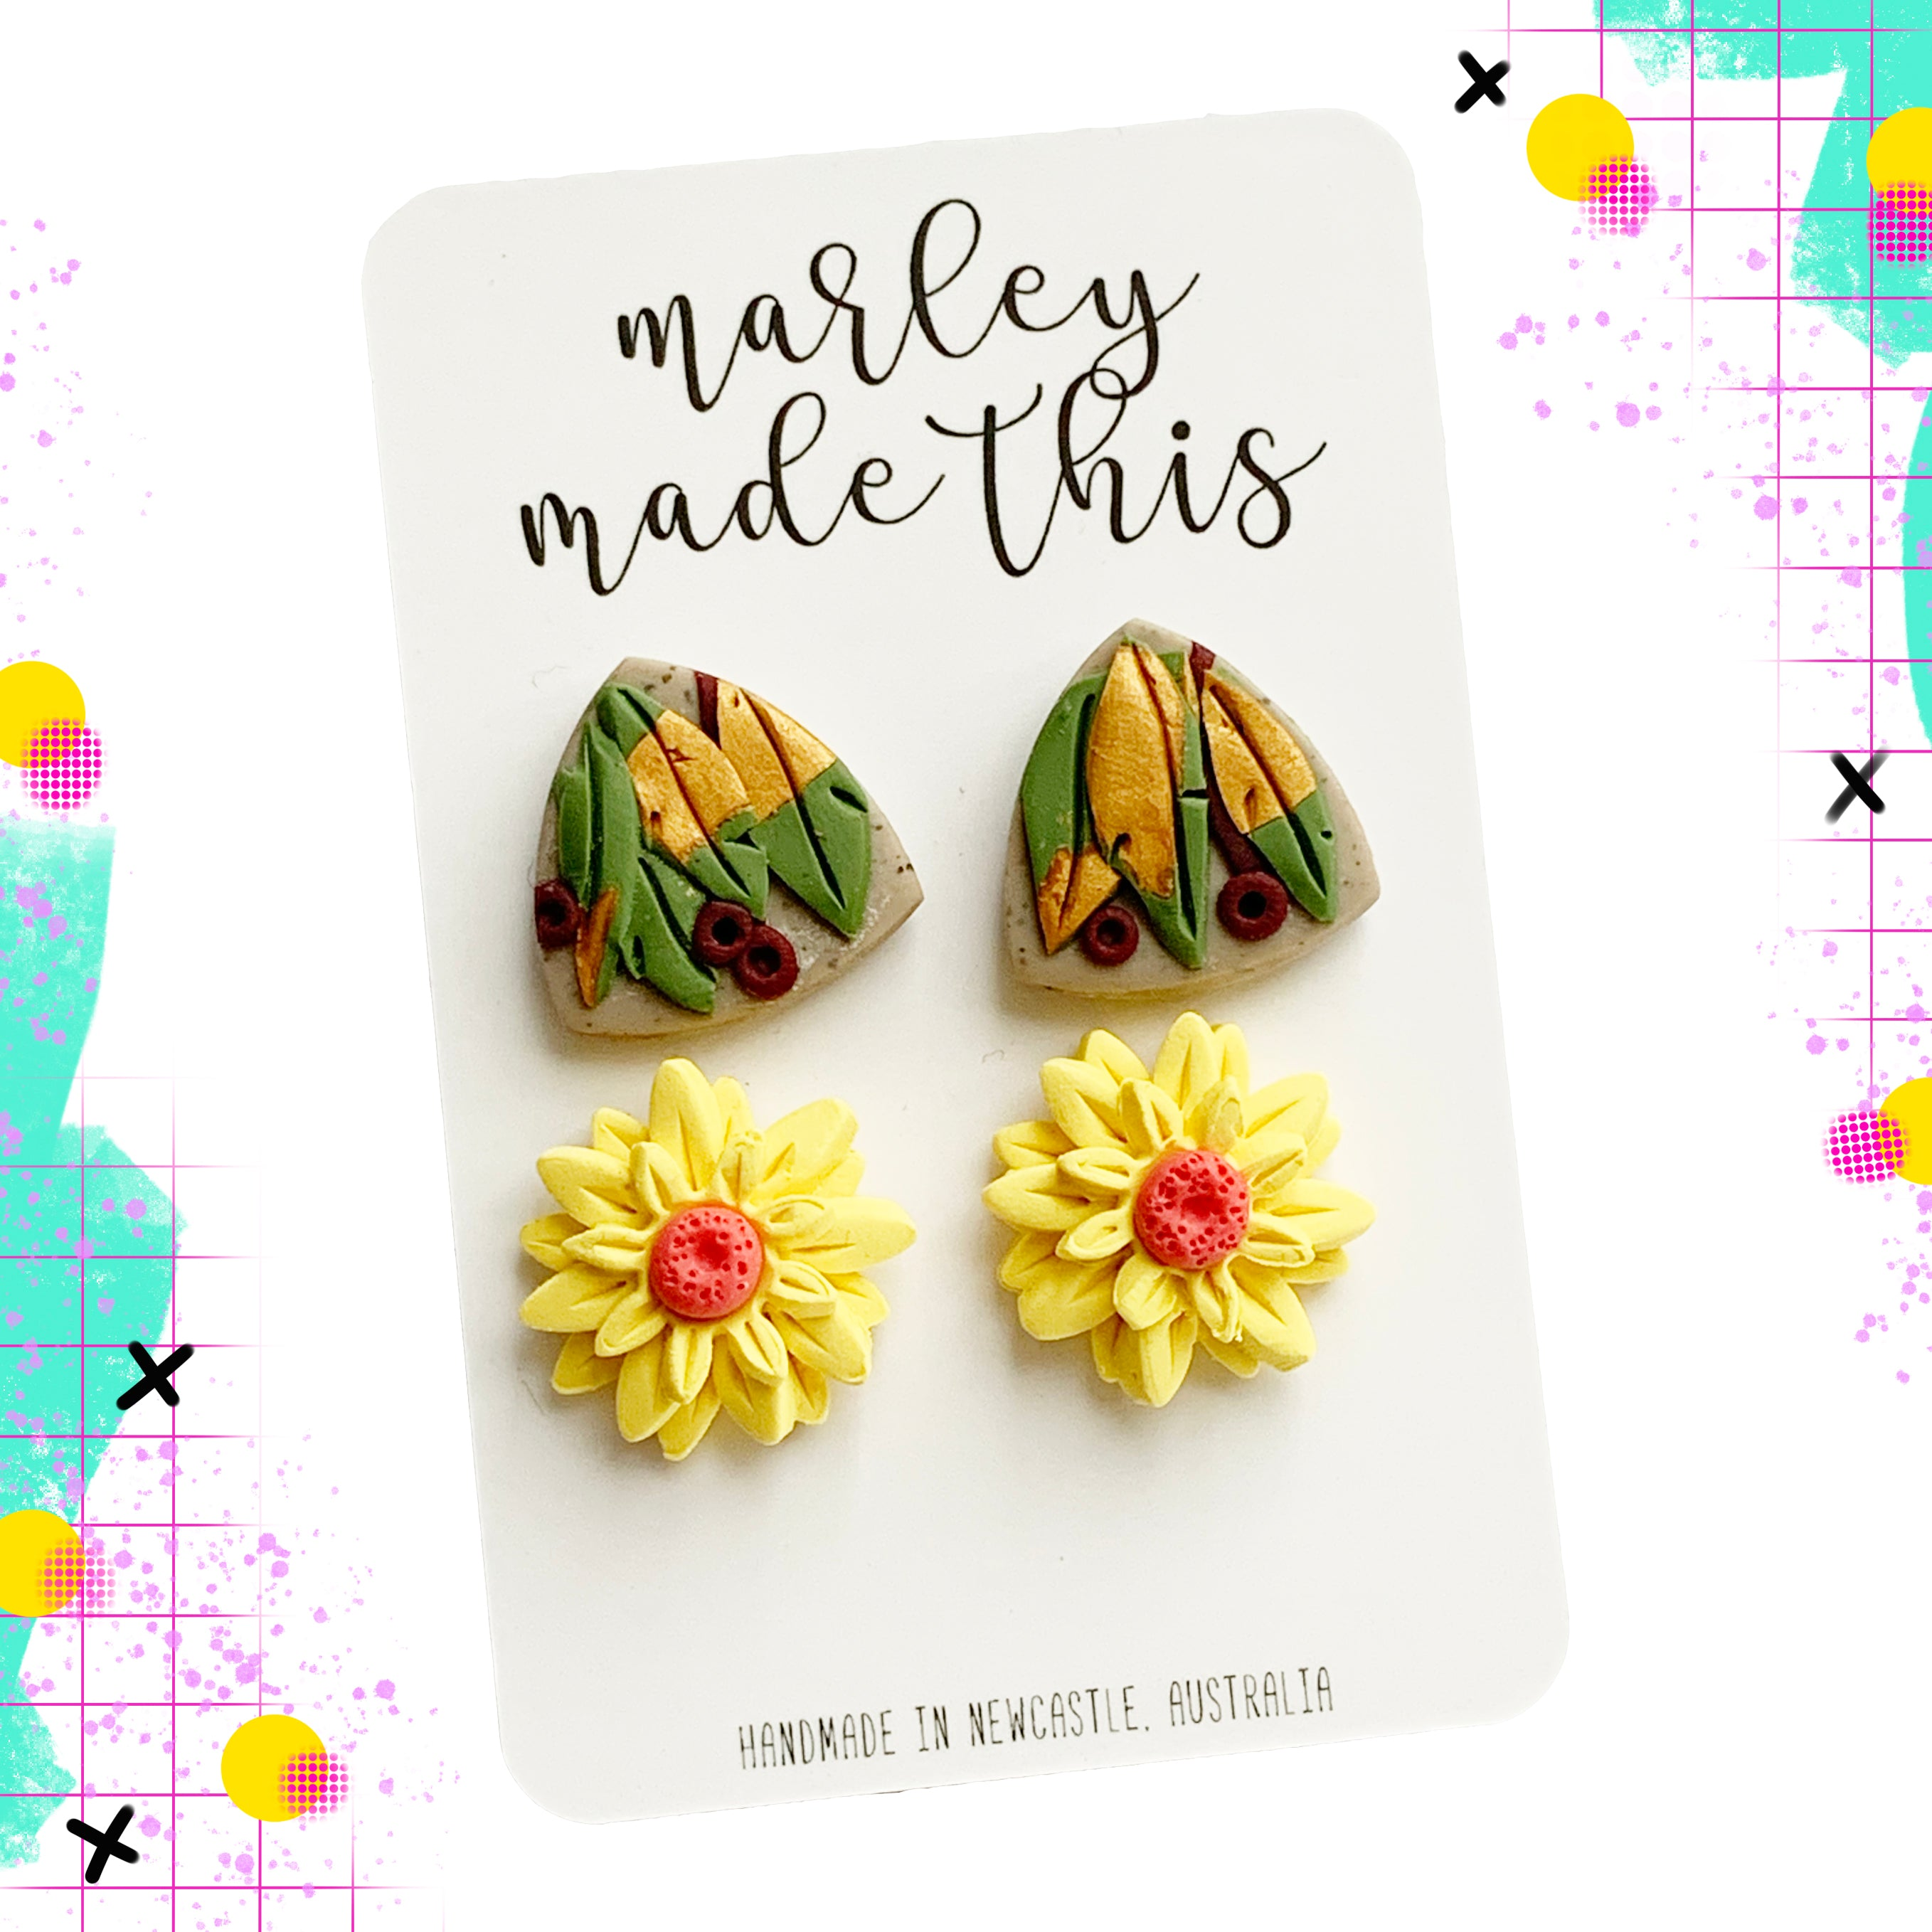 Marley Made This | Native studs duo pack